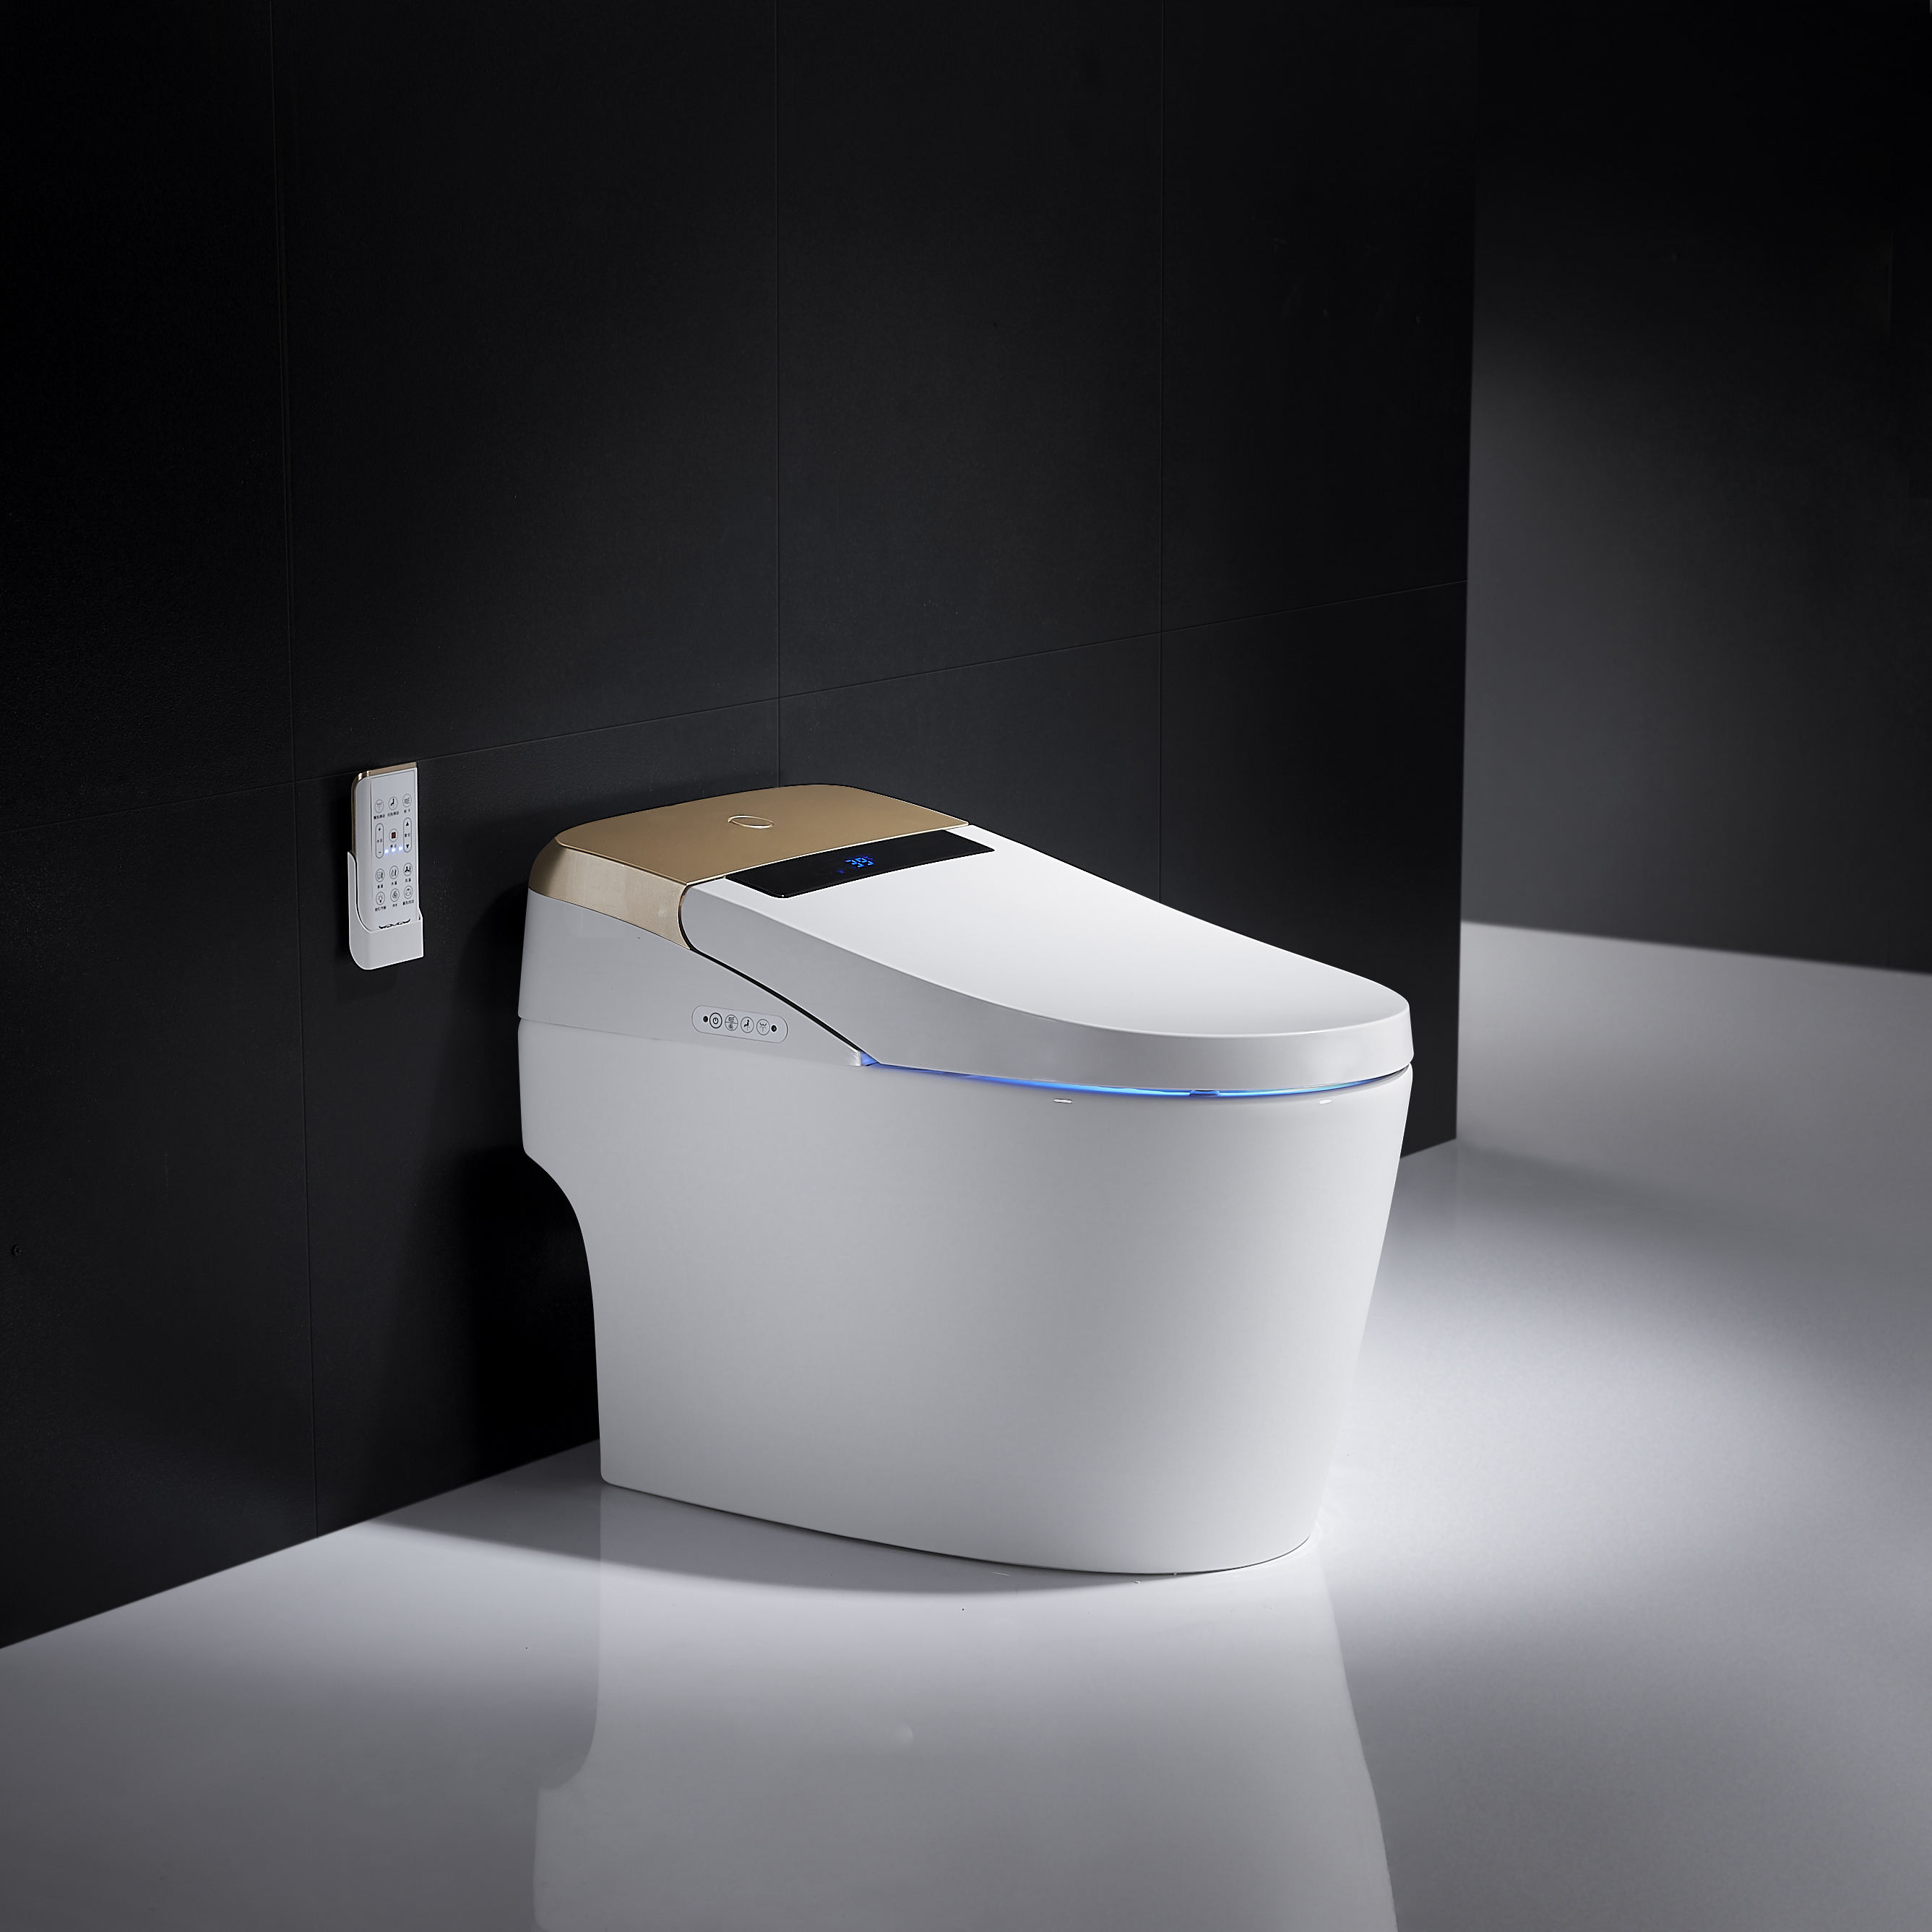 1000pcs 1//2 Fold Paper Toilet Seat Cover and 1pc Toilet Seat Cover Dispenser